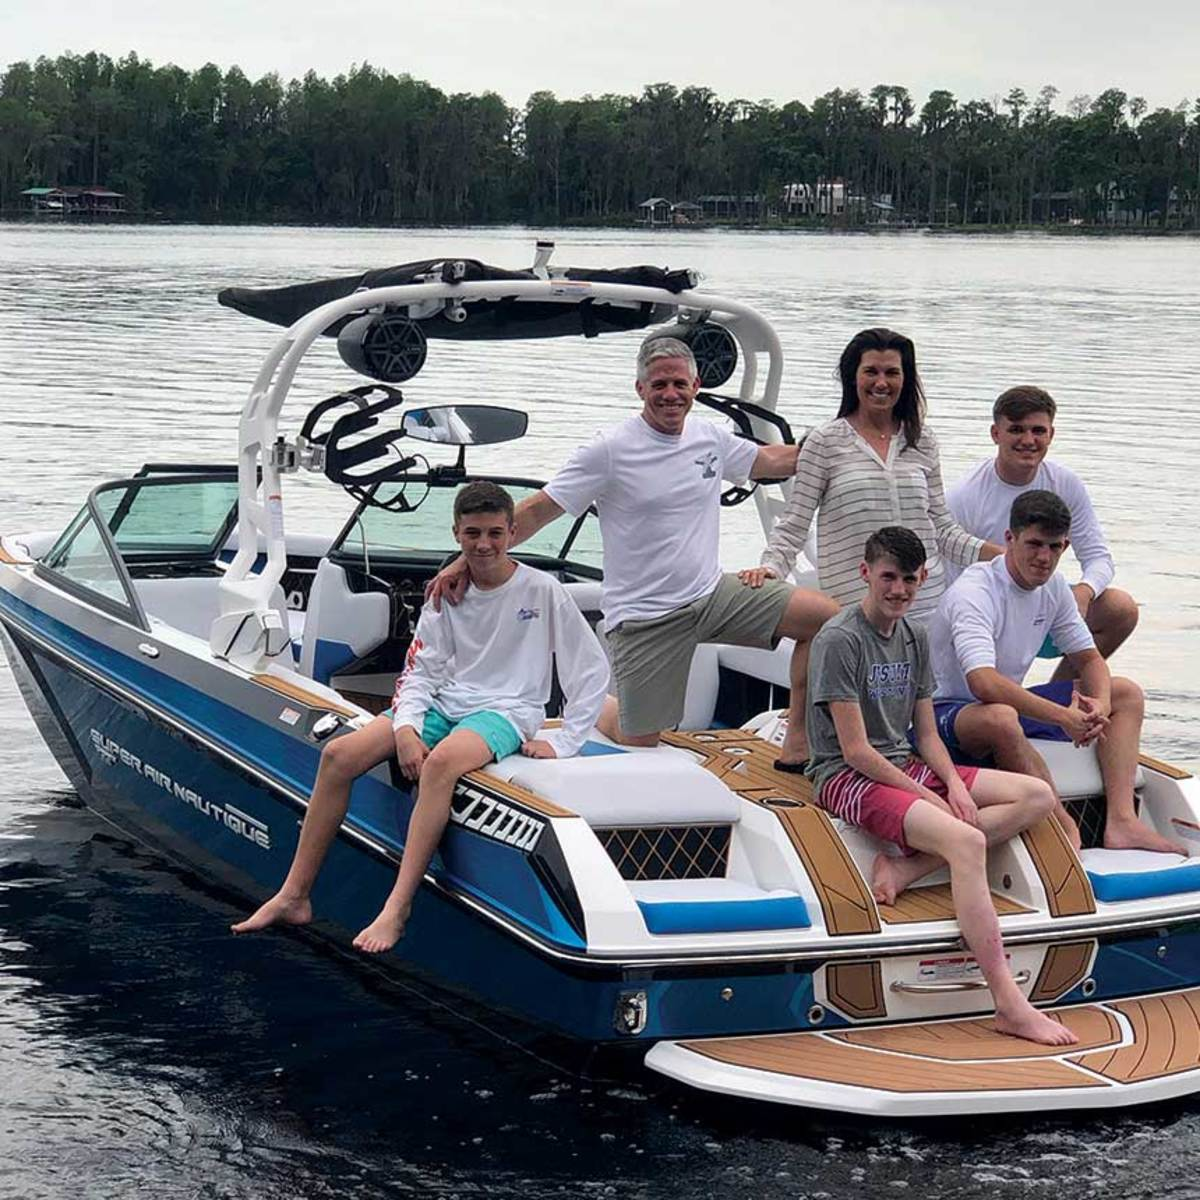 The McGills spend many weekends together on the family boat.